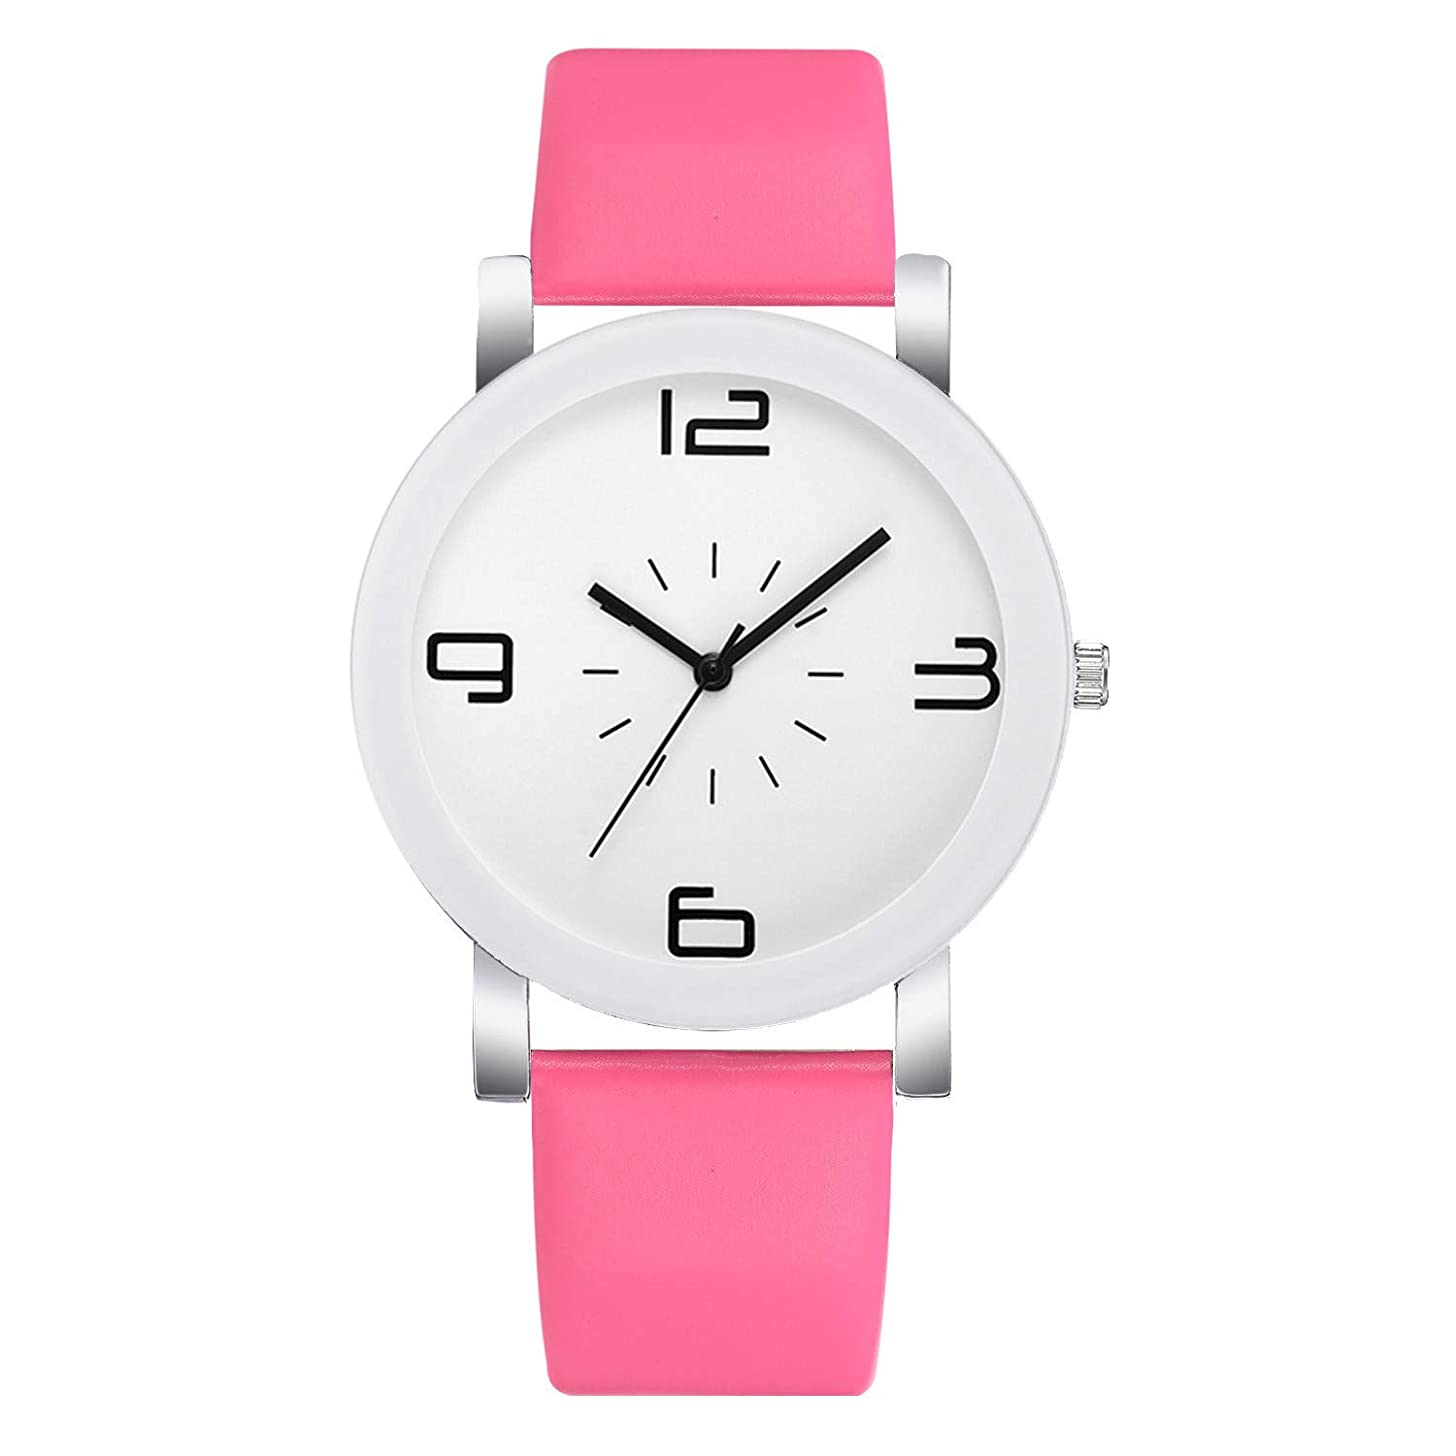 LUCAMORE Women Simple Watches Casual Quartz Leather Band Analog Wrist Watch Female Watch Gift